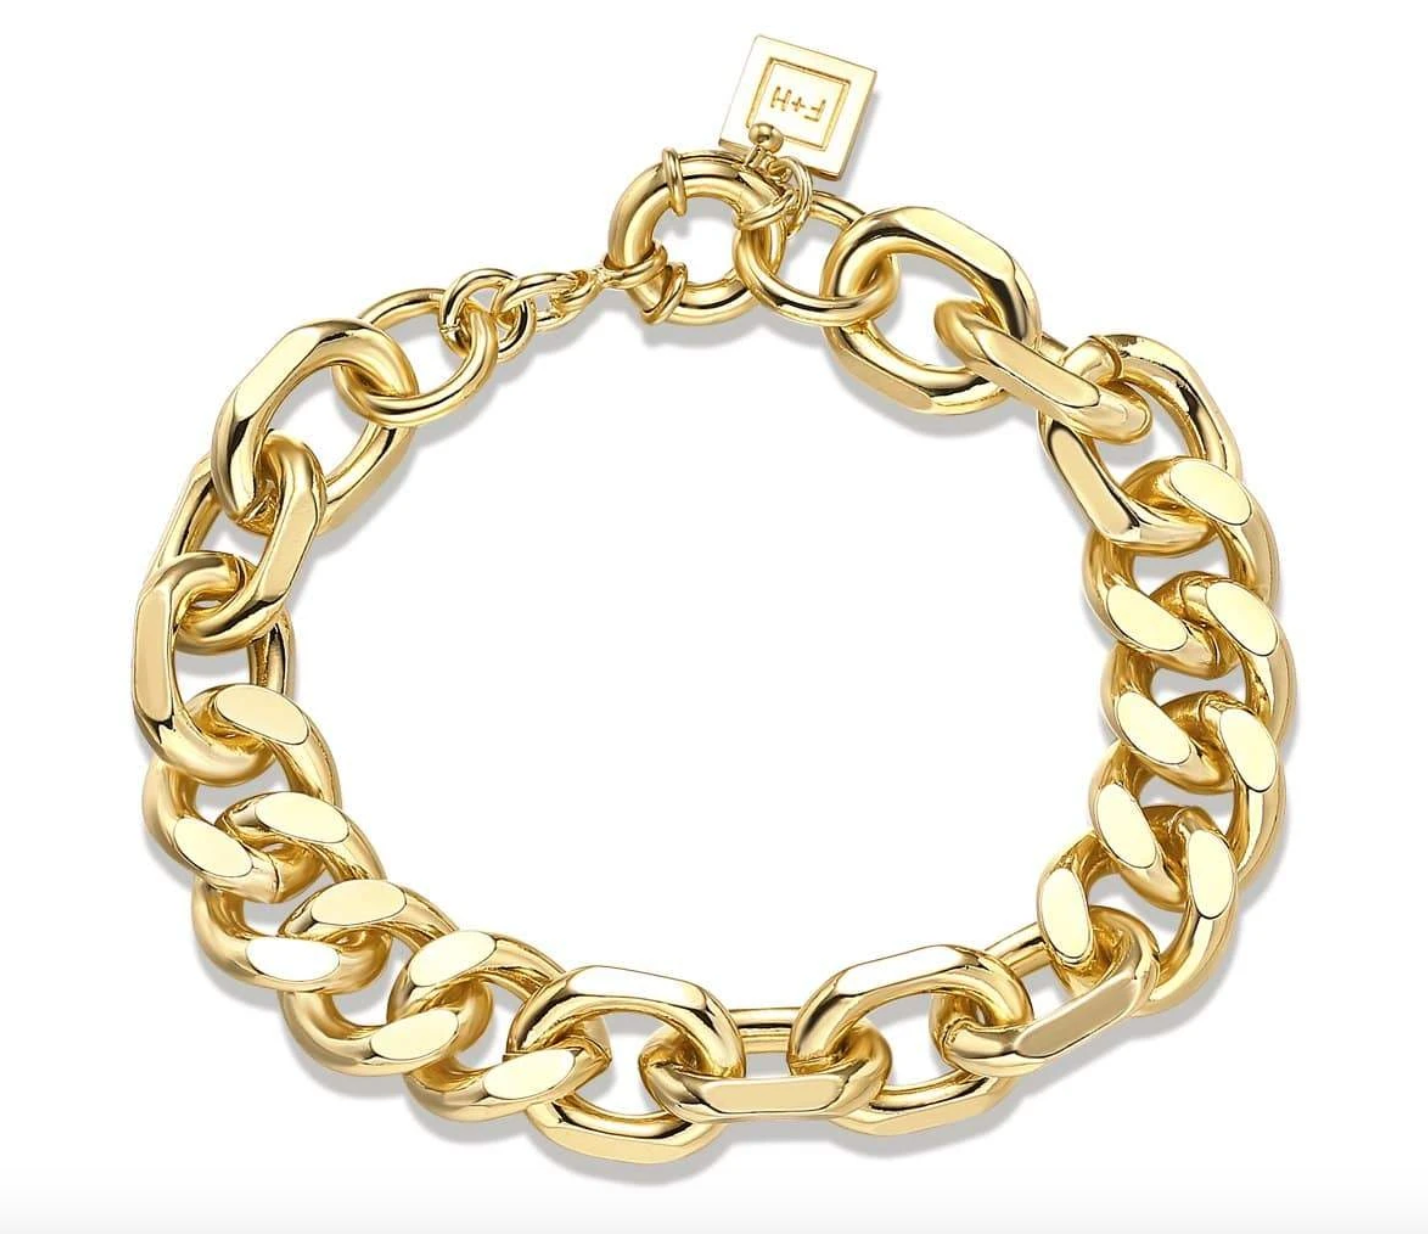 F + H Mixed Up Statement Bracelet